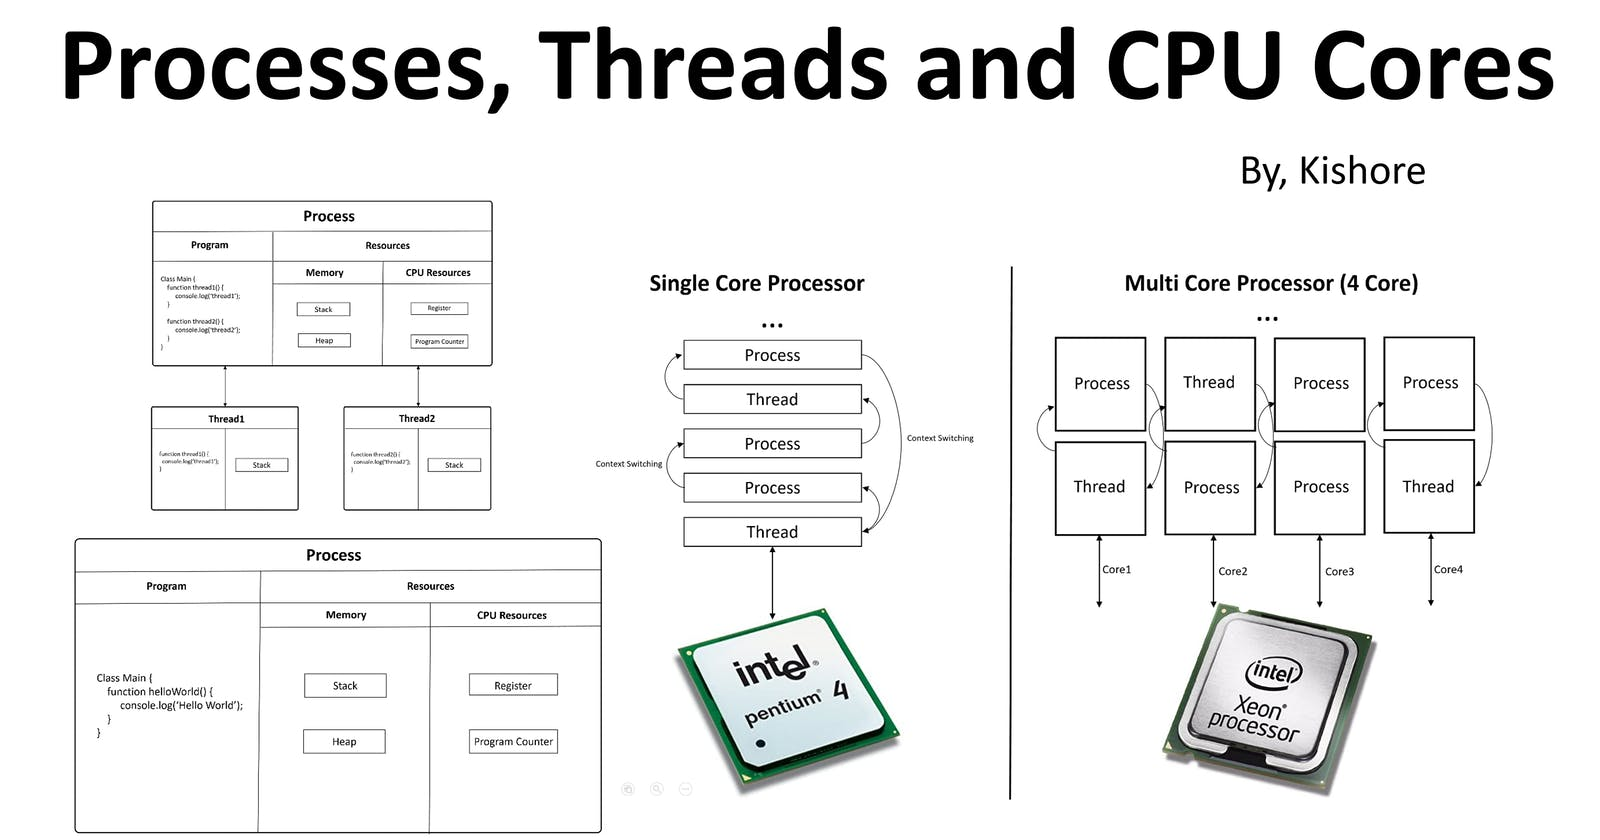 Understanding Processes, Threads and CPU Cores